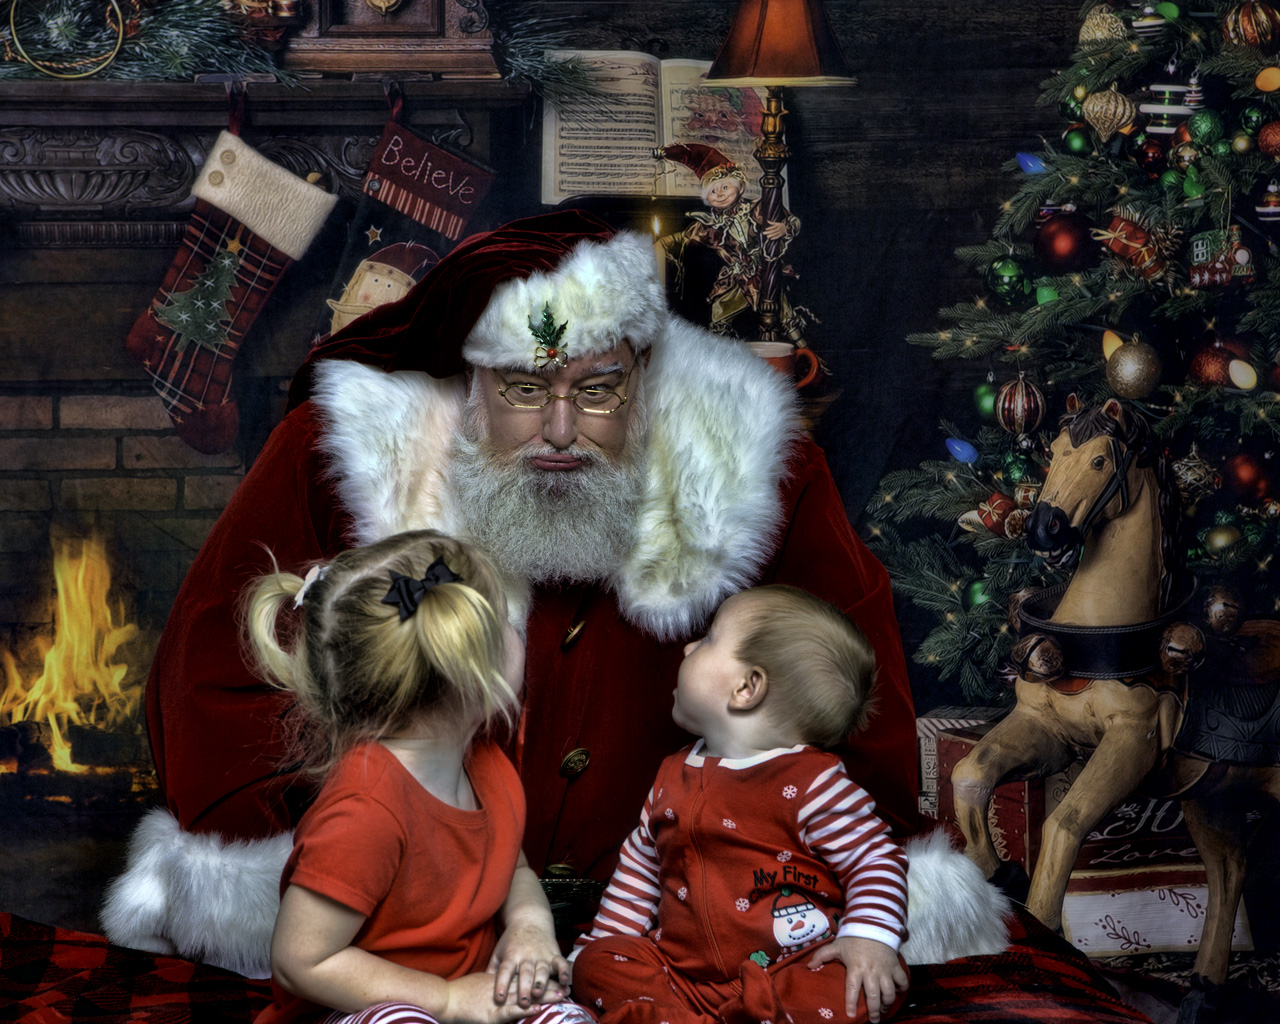 Santa talking to two little babies